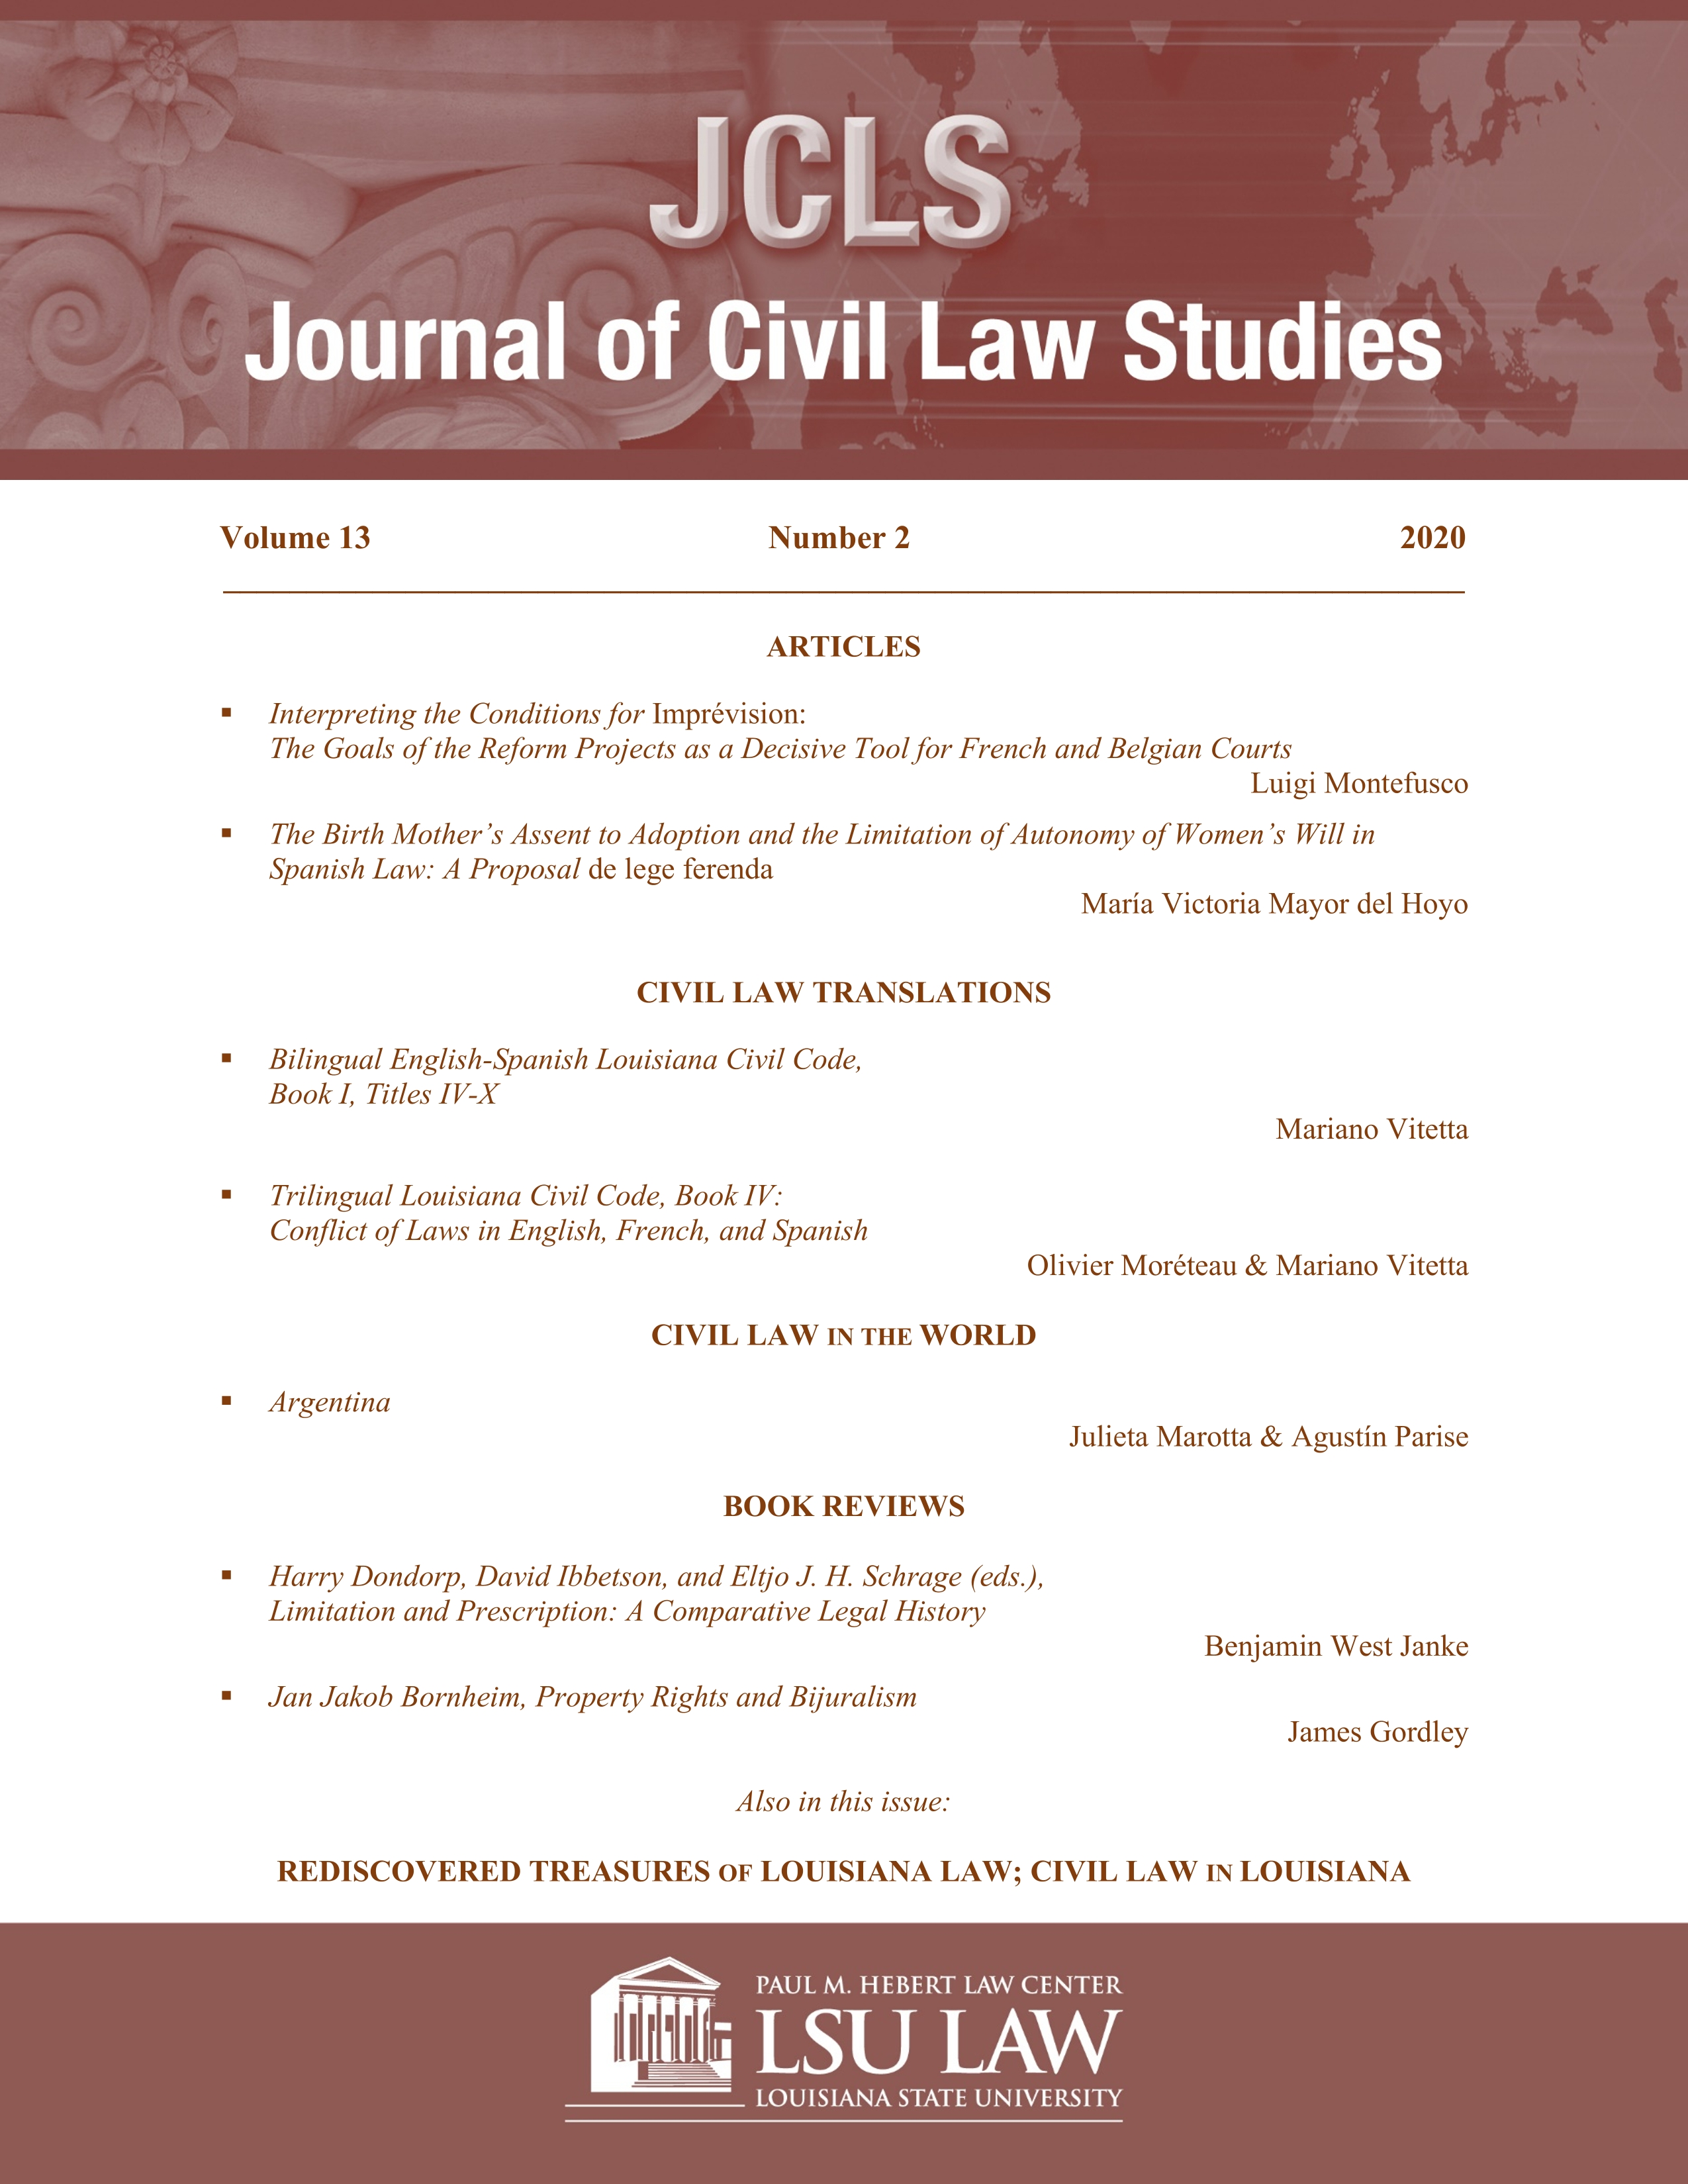 The birth mother's assent to adoption and the limitation of autonomy of women's will in Spanish law: a proposal